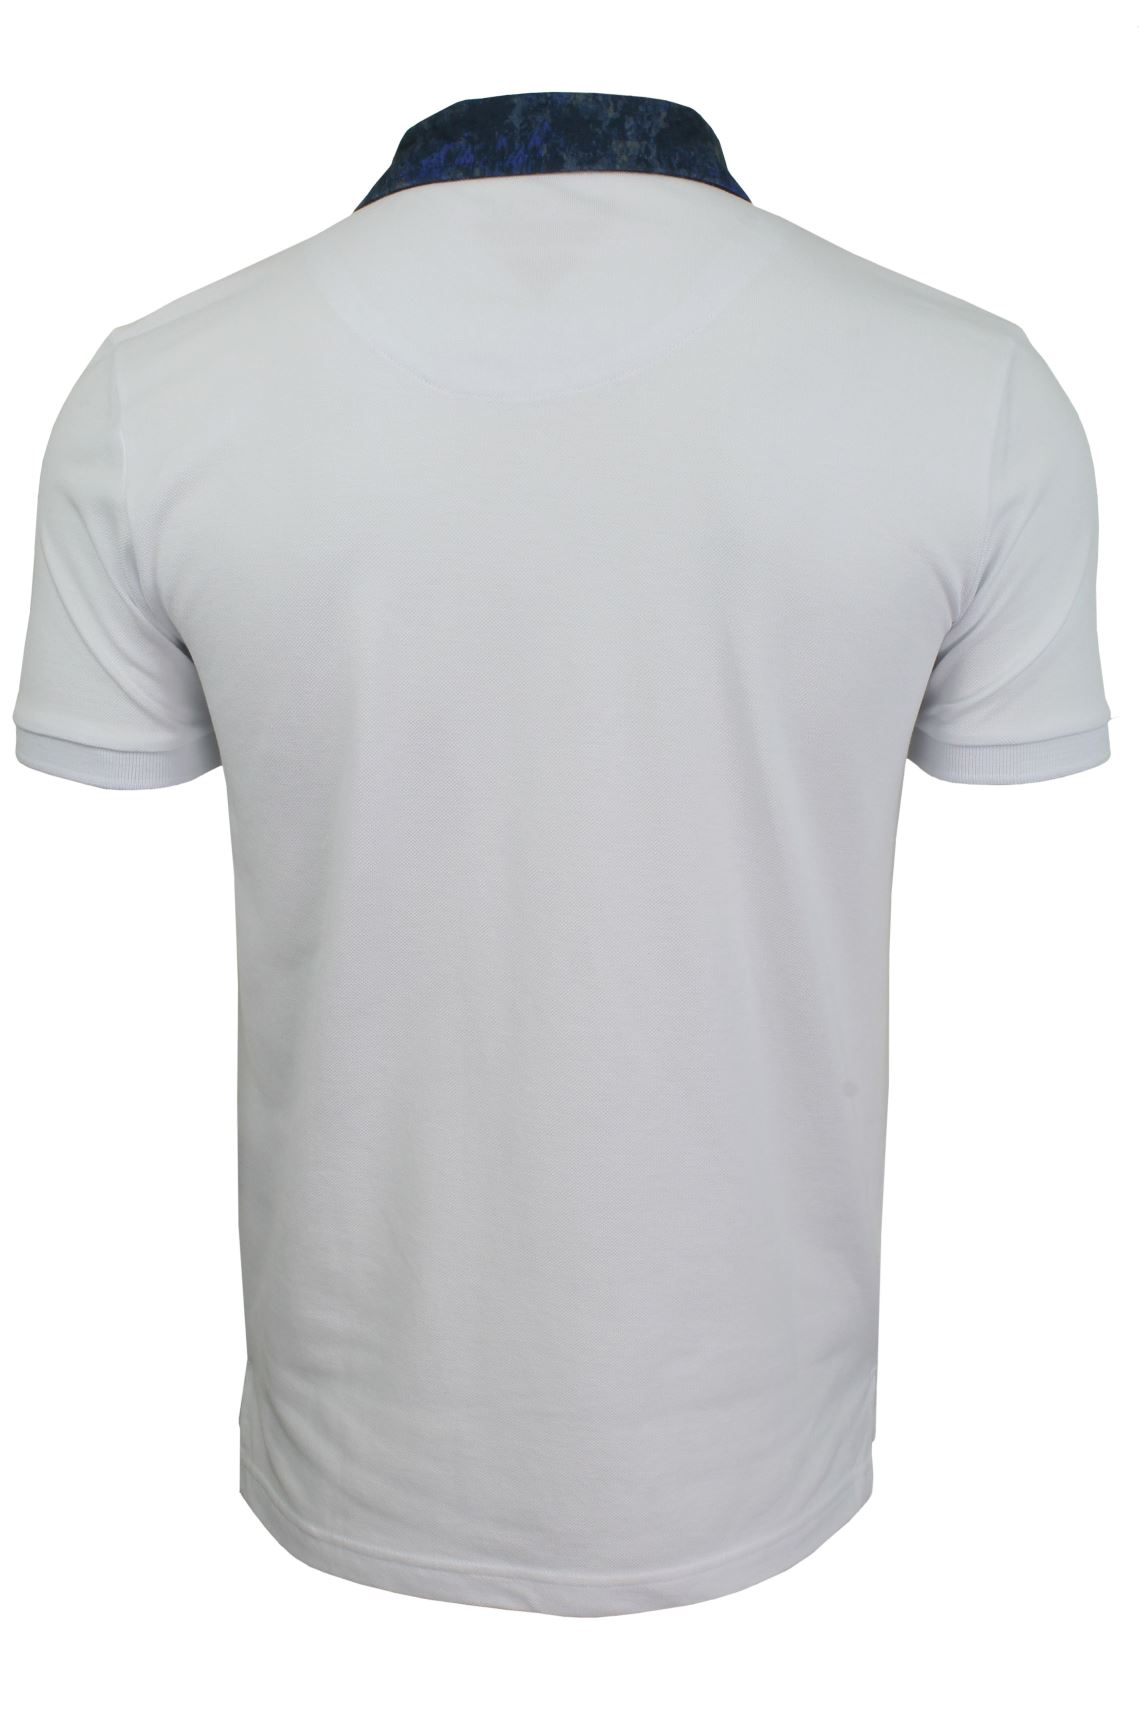 Mens-Short-Sleeved-Polo-Shirt-from-the-Blackout-Collection-by-Voi-Jeans thumbnail 16